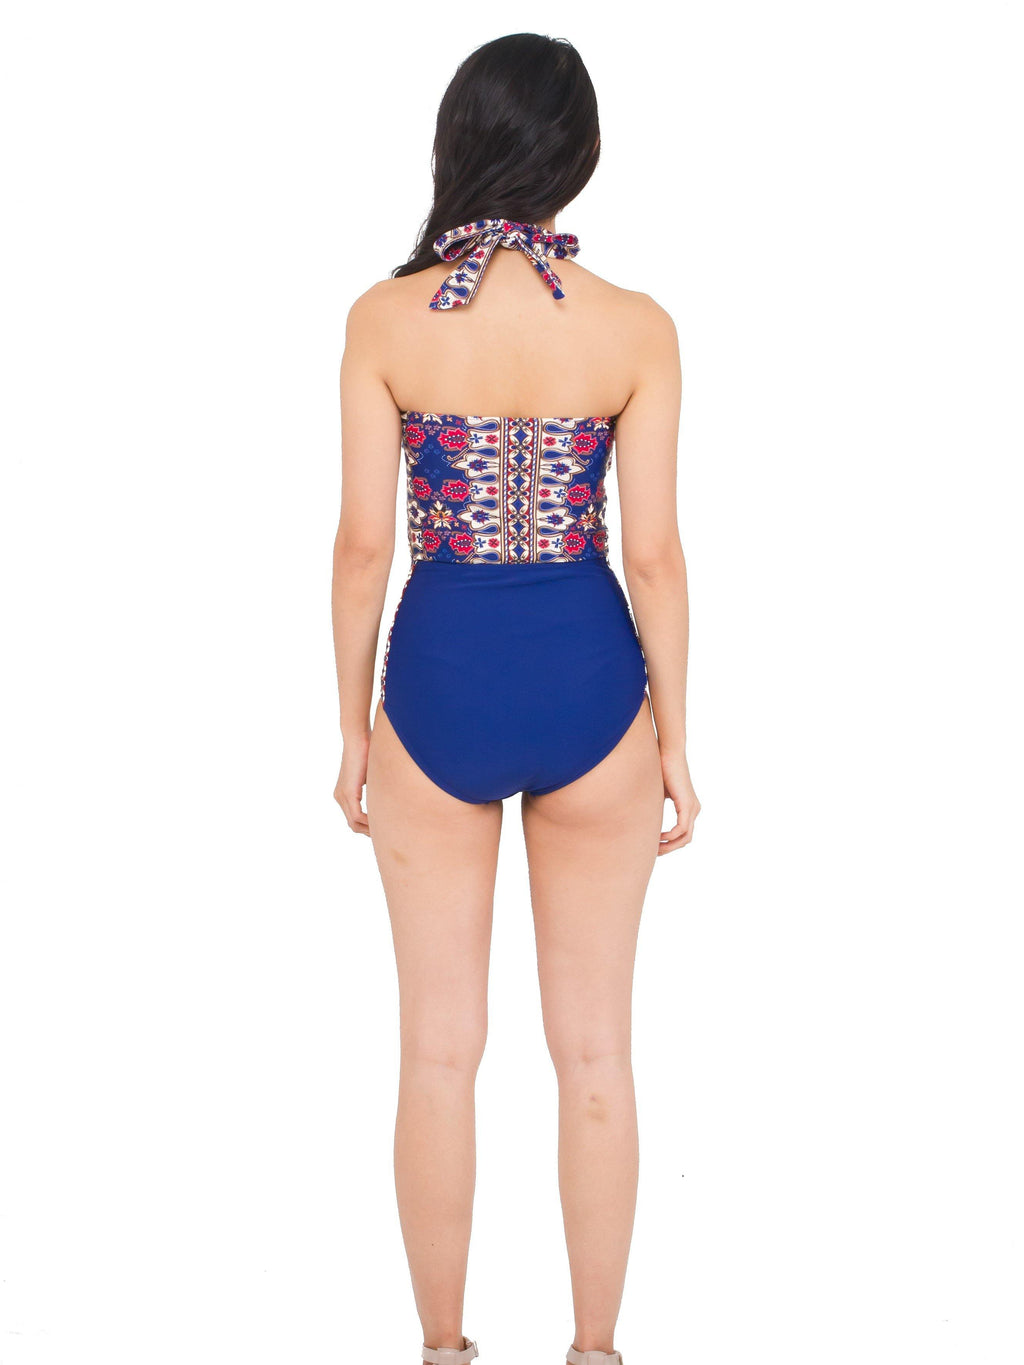 SIGNATURE BATIK Bayu Halter Cut-Out Swimsuit Nila Blue - pink-n-proper